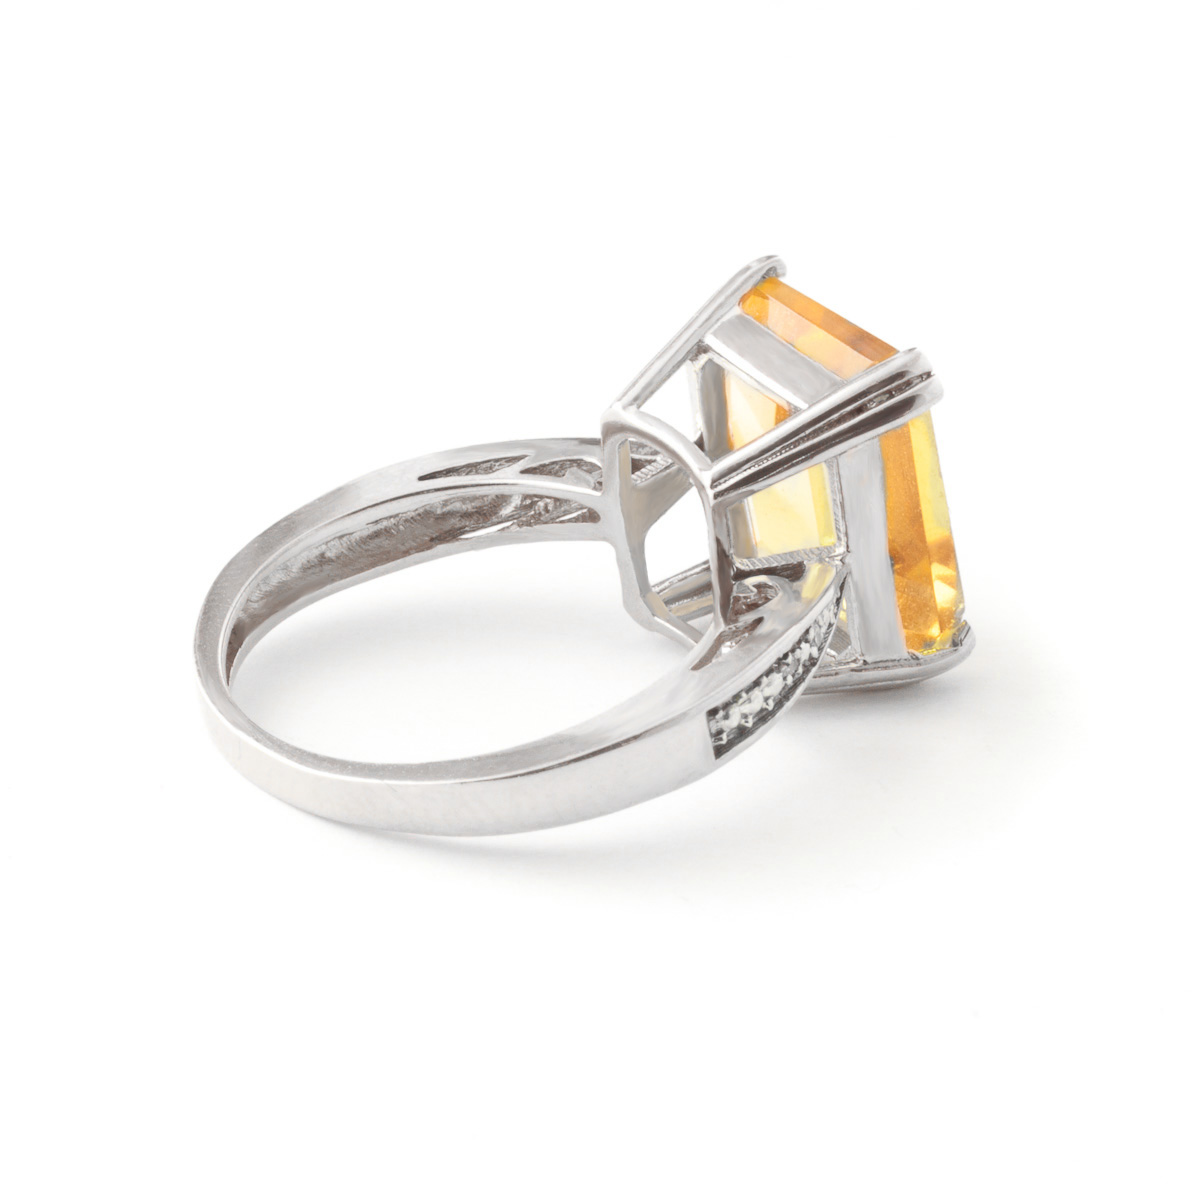 Citrine and Diamond Ring 5.6ct in 14K White Gold